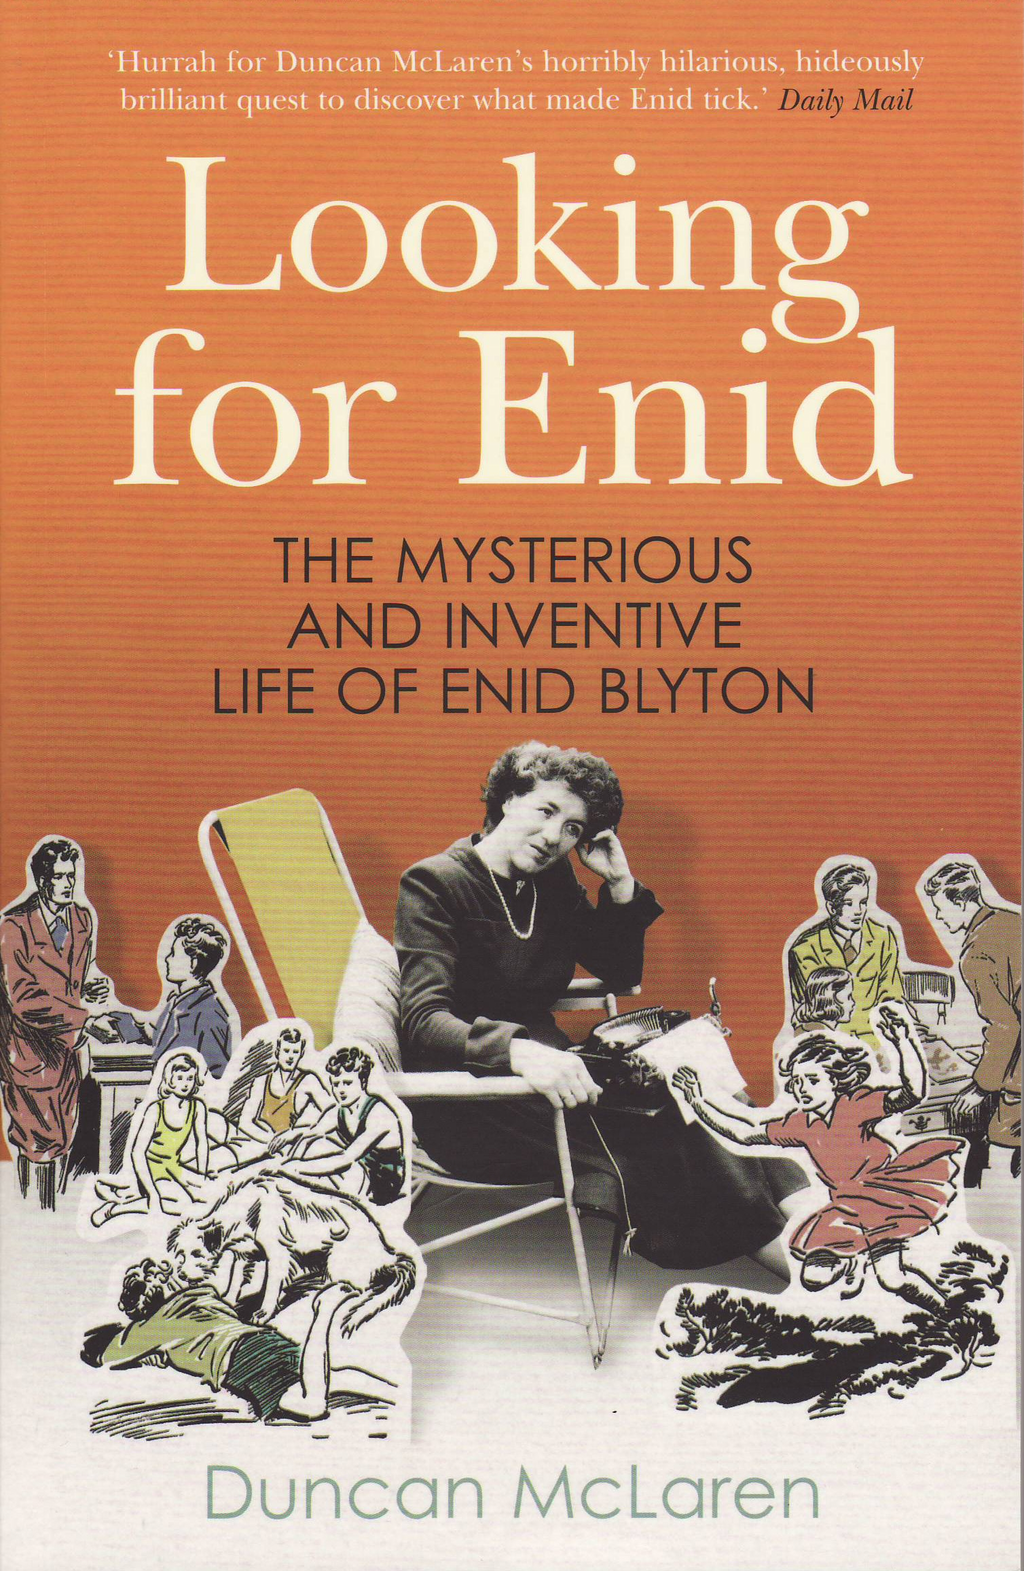 Looking For Enid The Mysterious And Inventive Life Of Enid Blyton